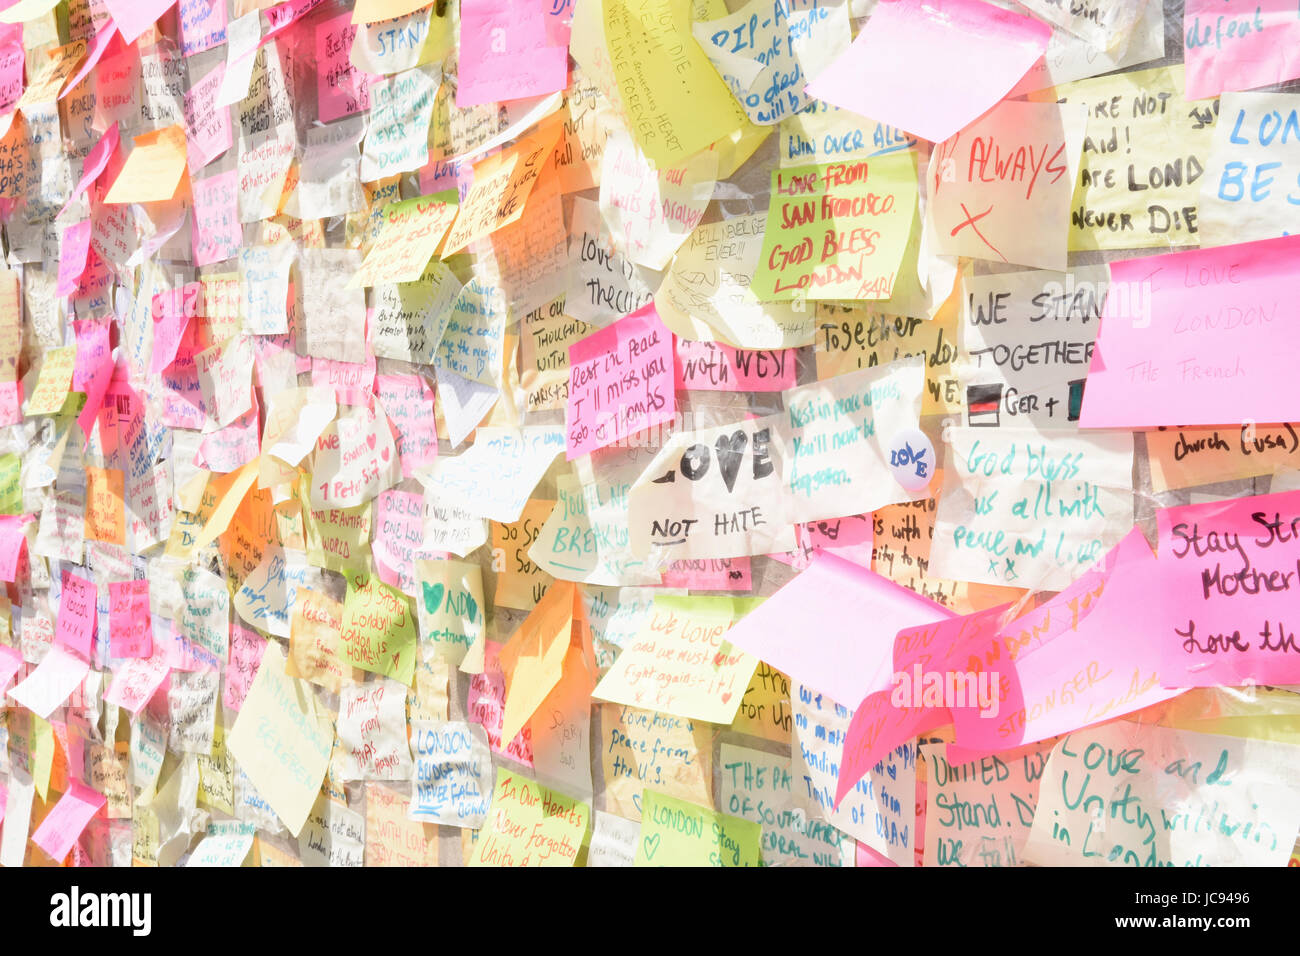 London Bridge Peace Wall,Hundreds of messages of peace were written on post it notes in the days following the London - Stock Image